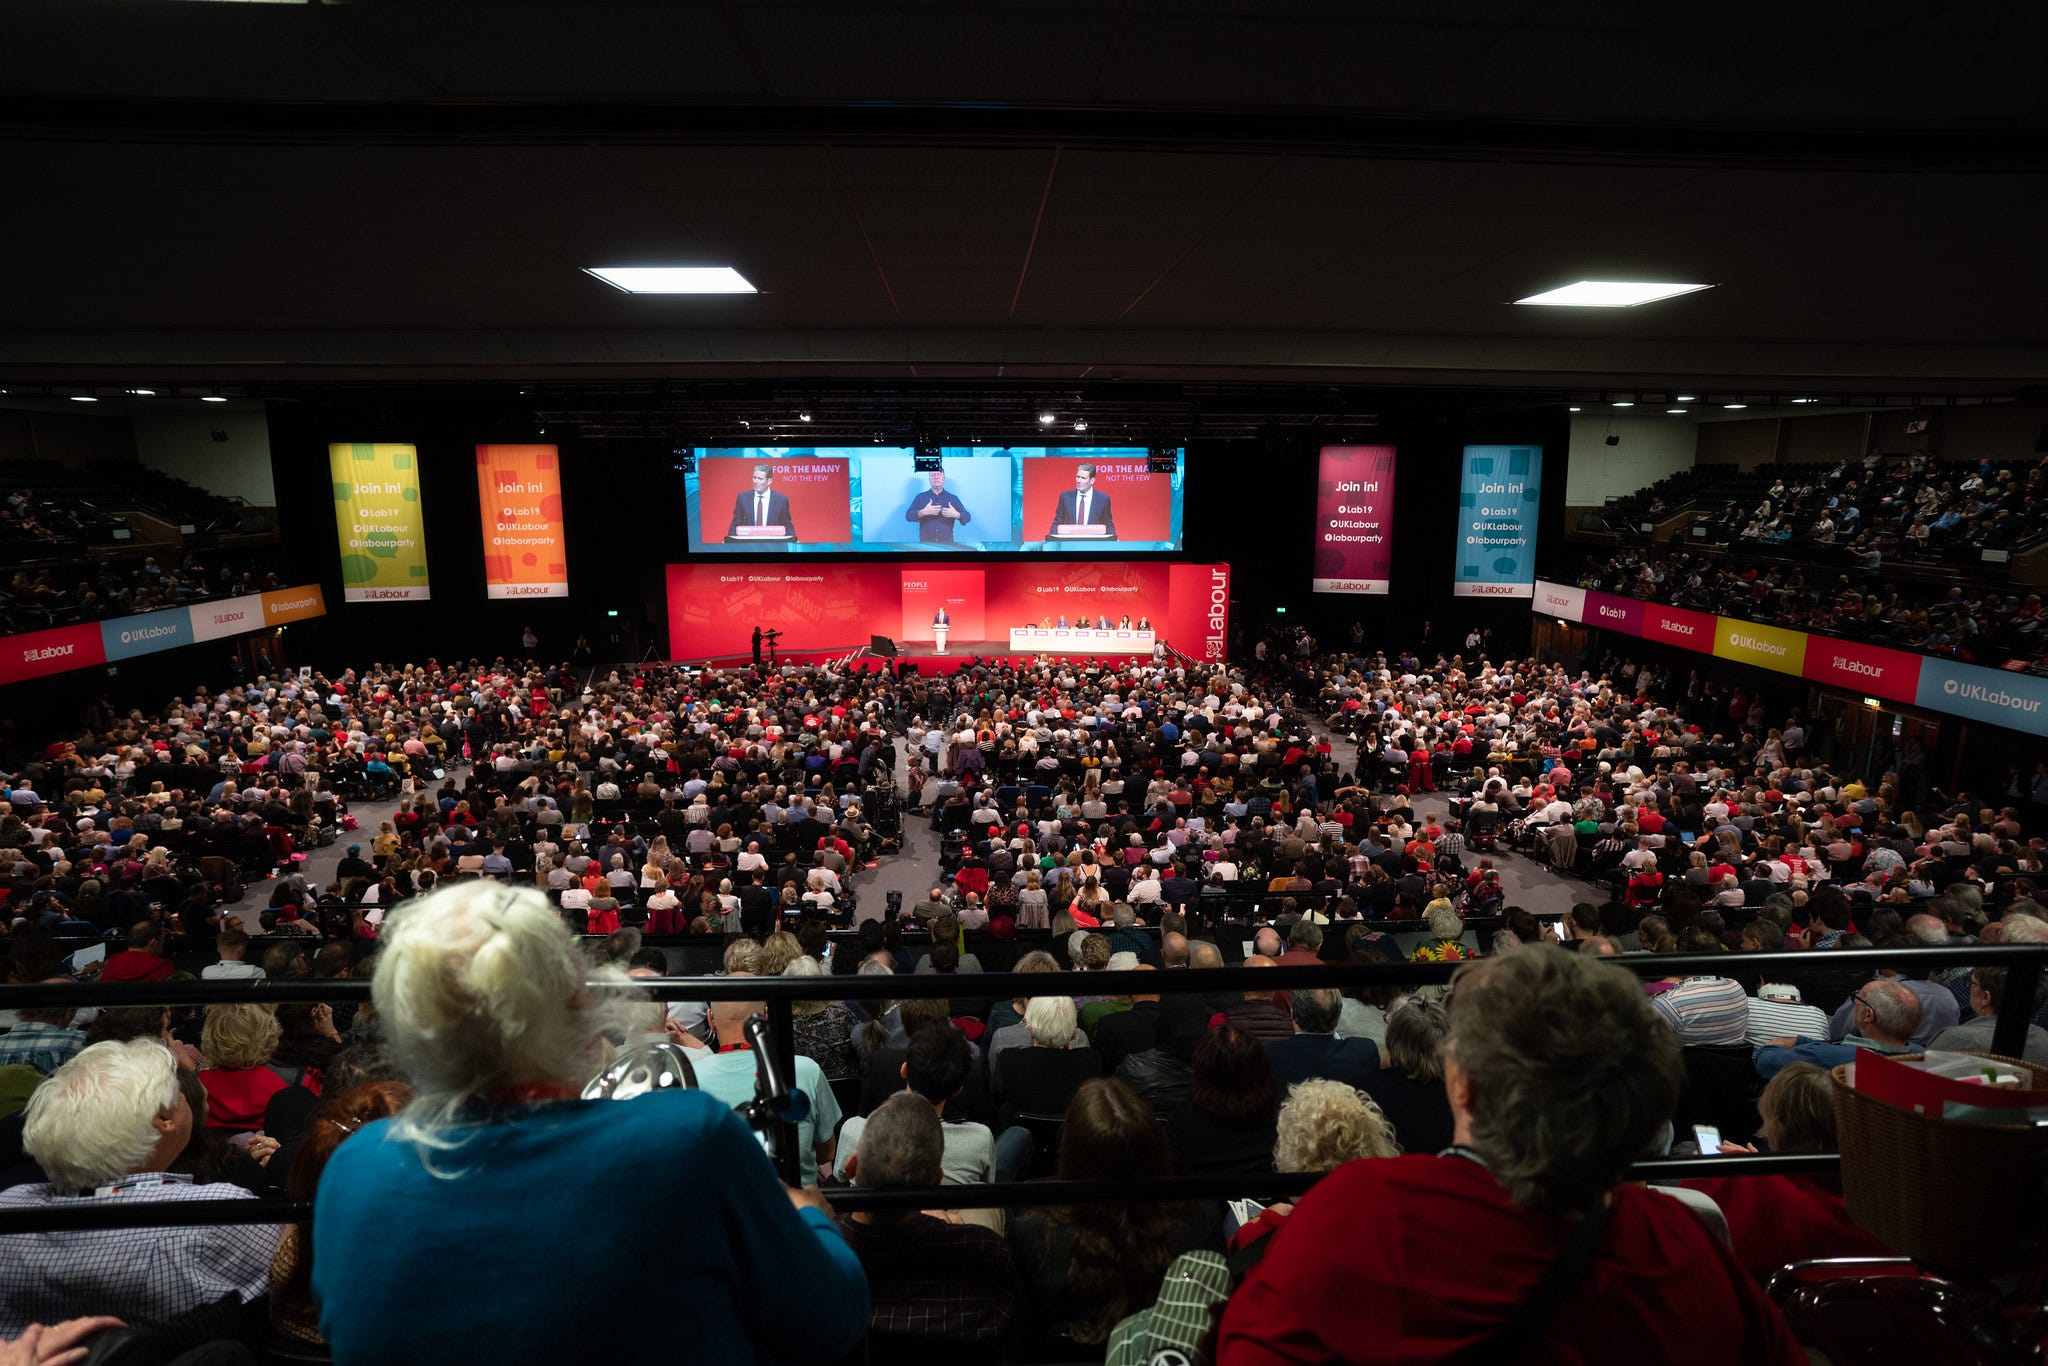 Head-on shot of Labour Party conference hall, Brighton 2019, showing rows of seated delegates, stage and big screen